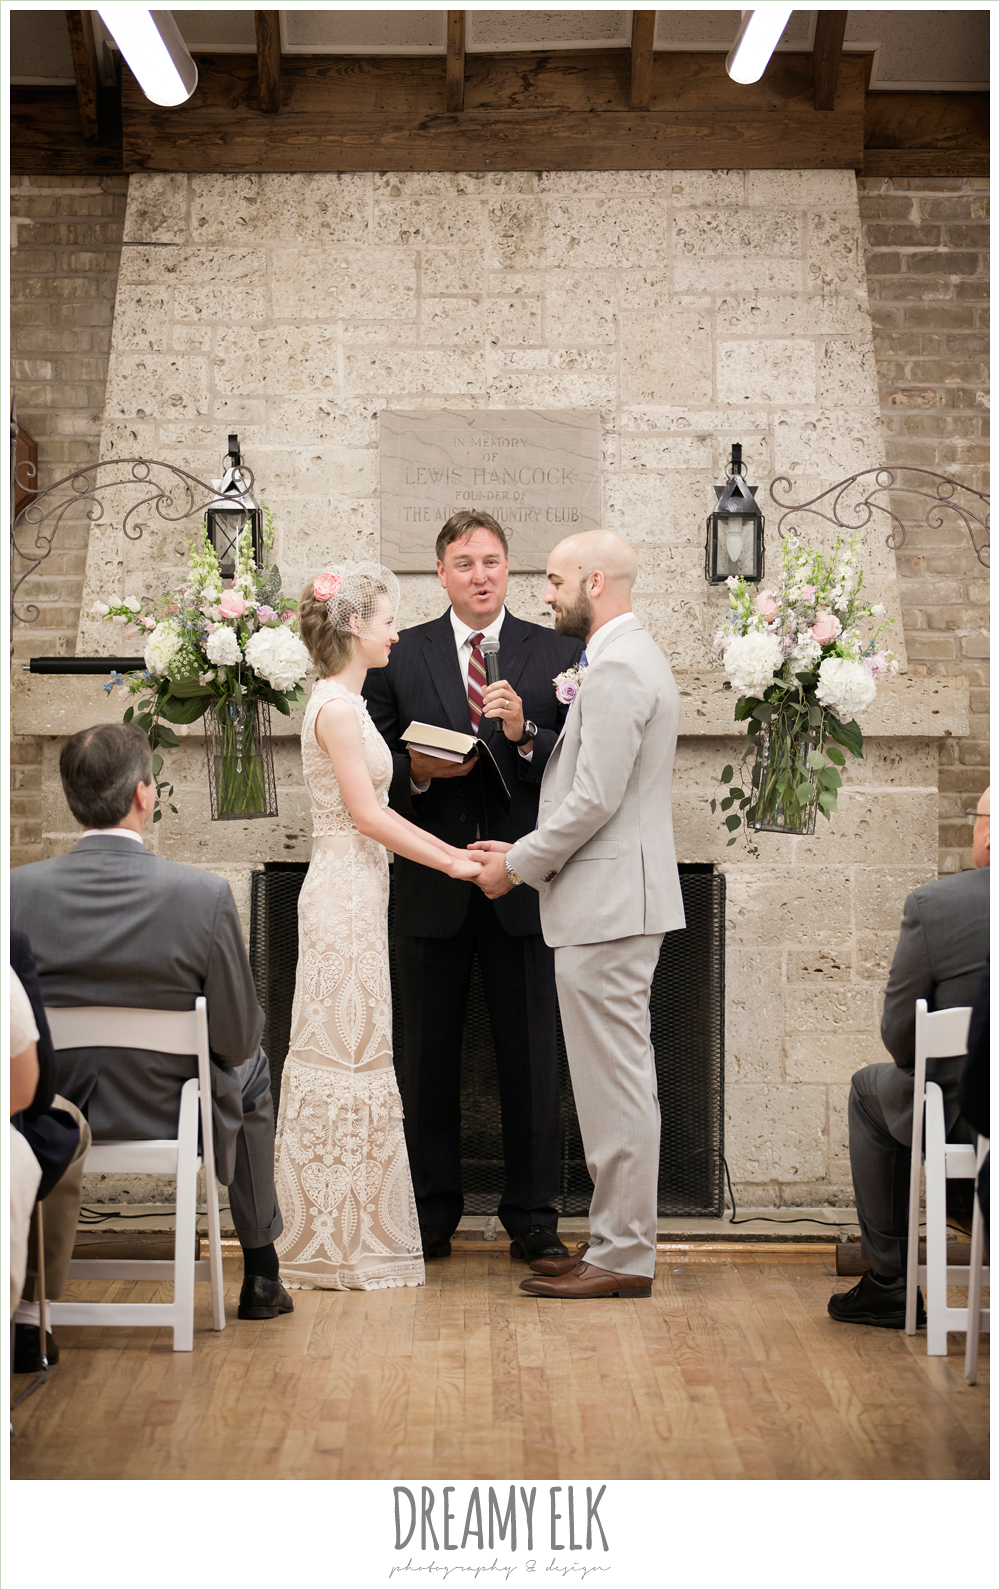 indoor wedding ceremony, spring wedding, austin, texas {dreamy elk photography and design}